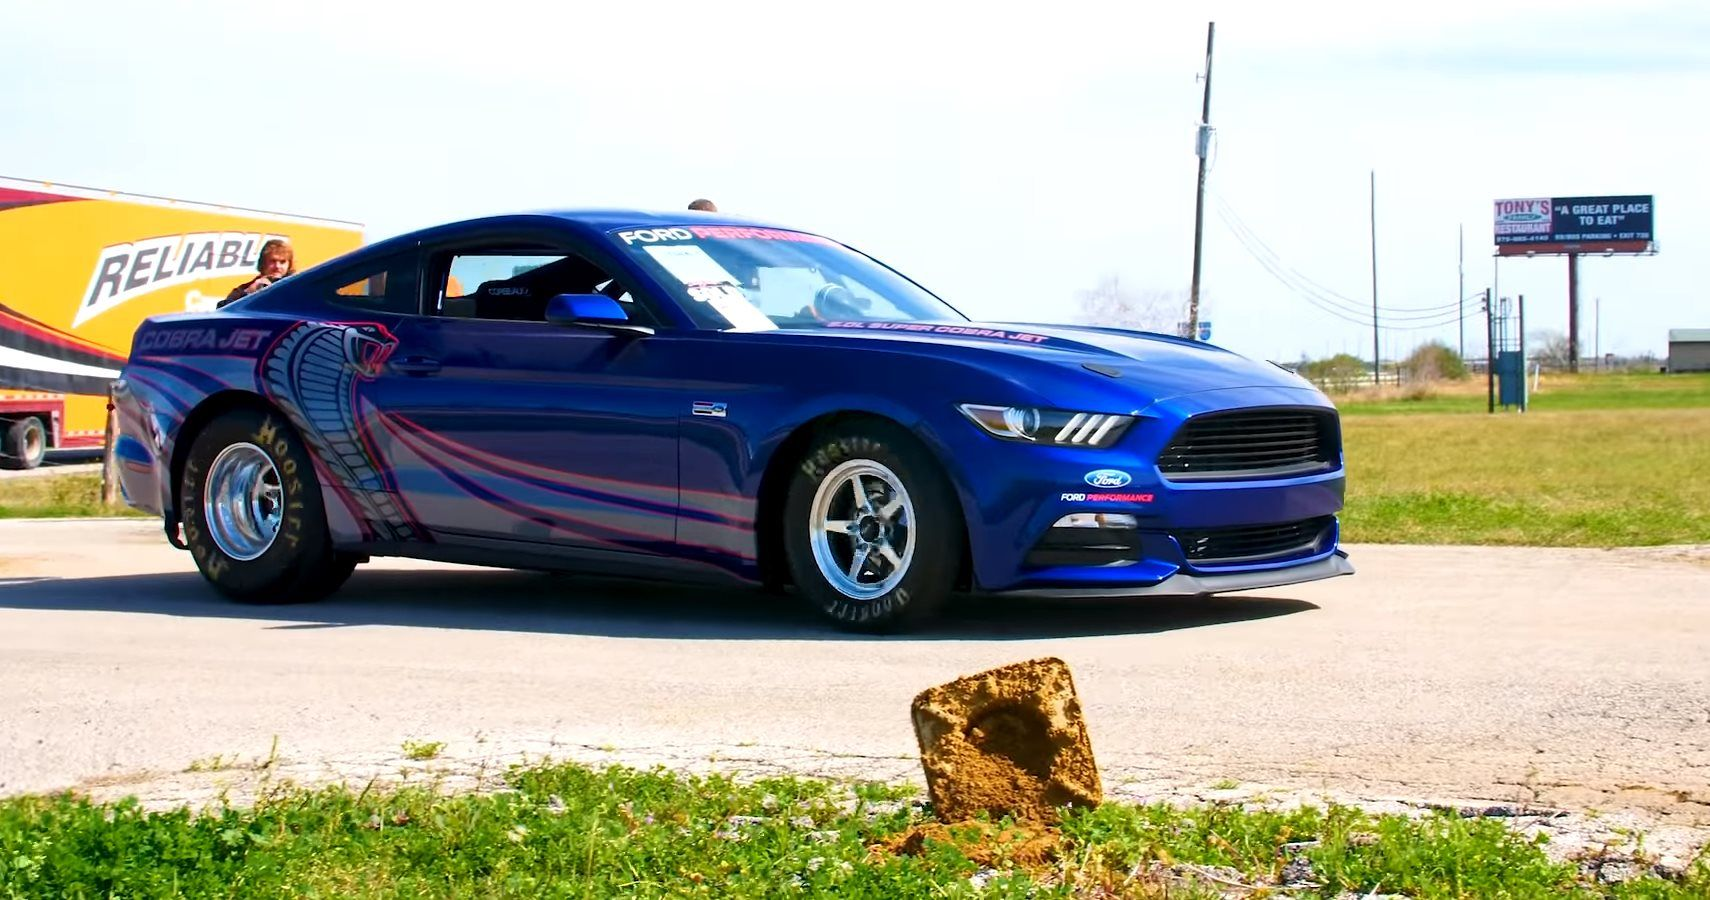 Watch Hennessey Dyno Test A Mustang Cobra Jet With Insane Power